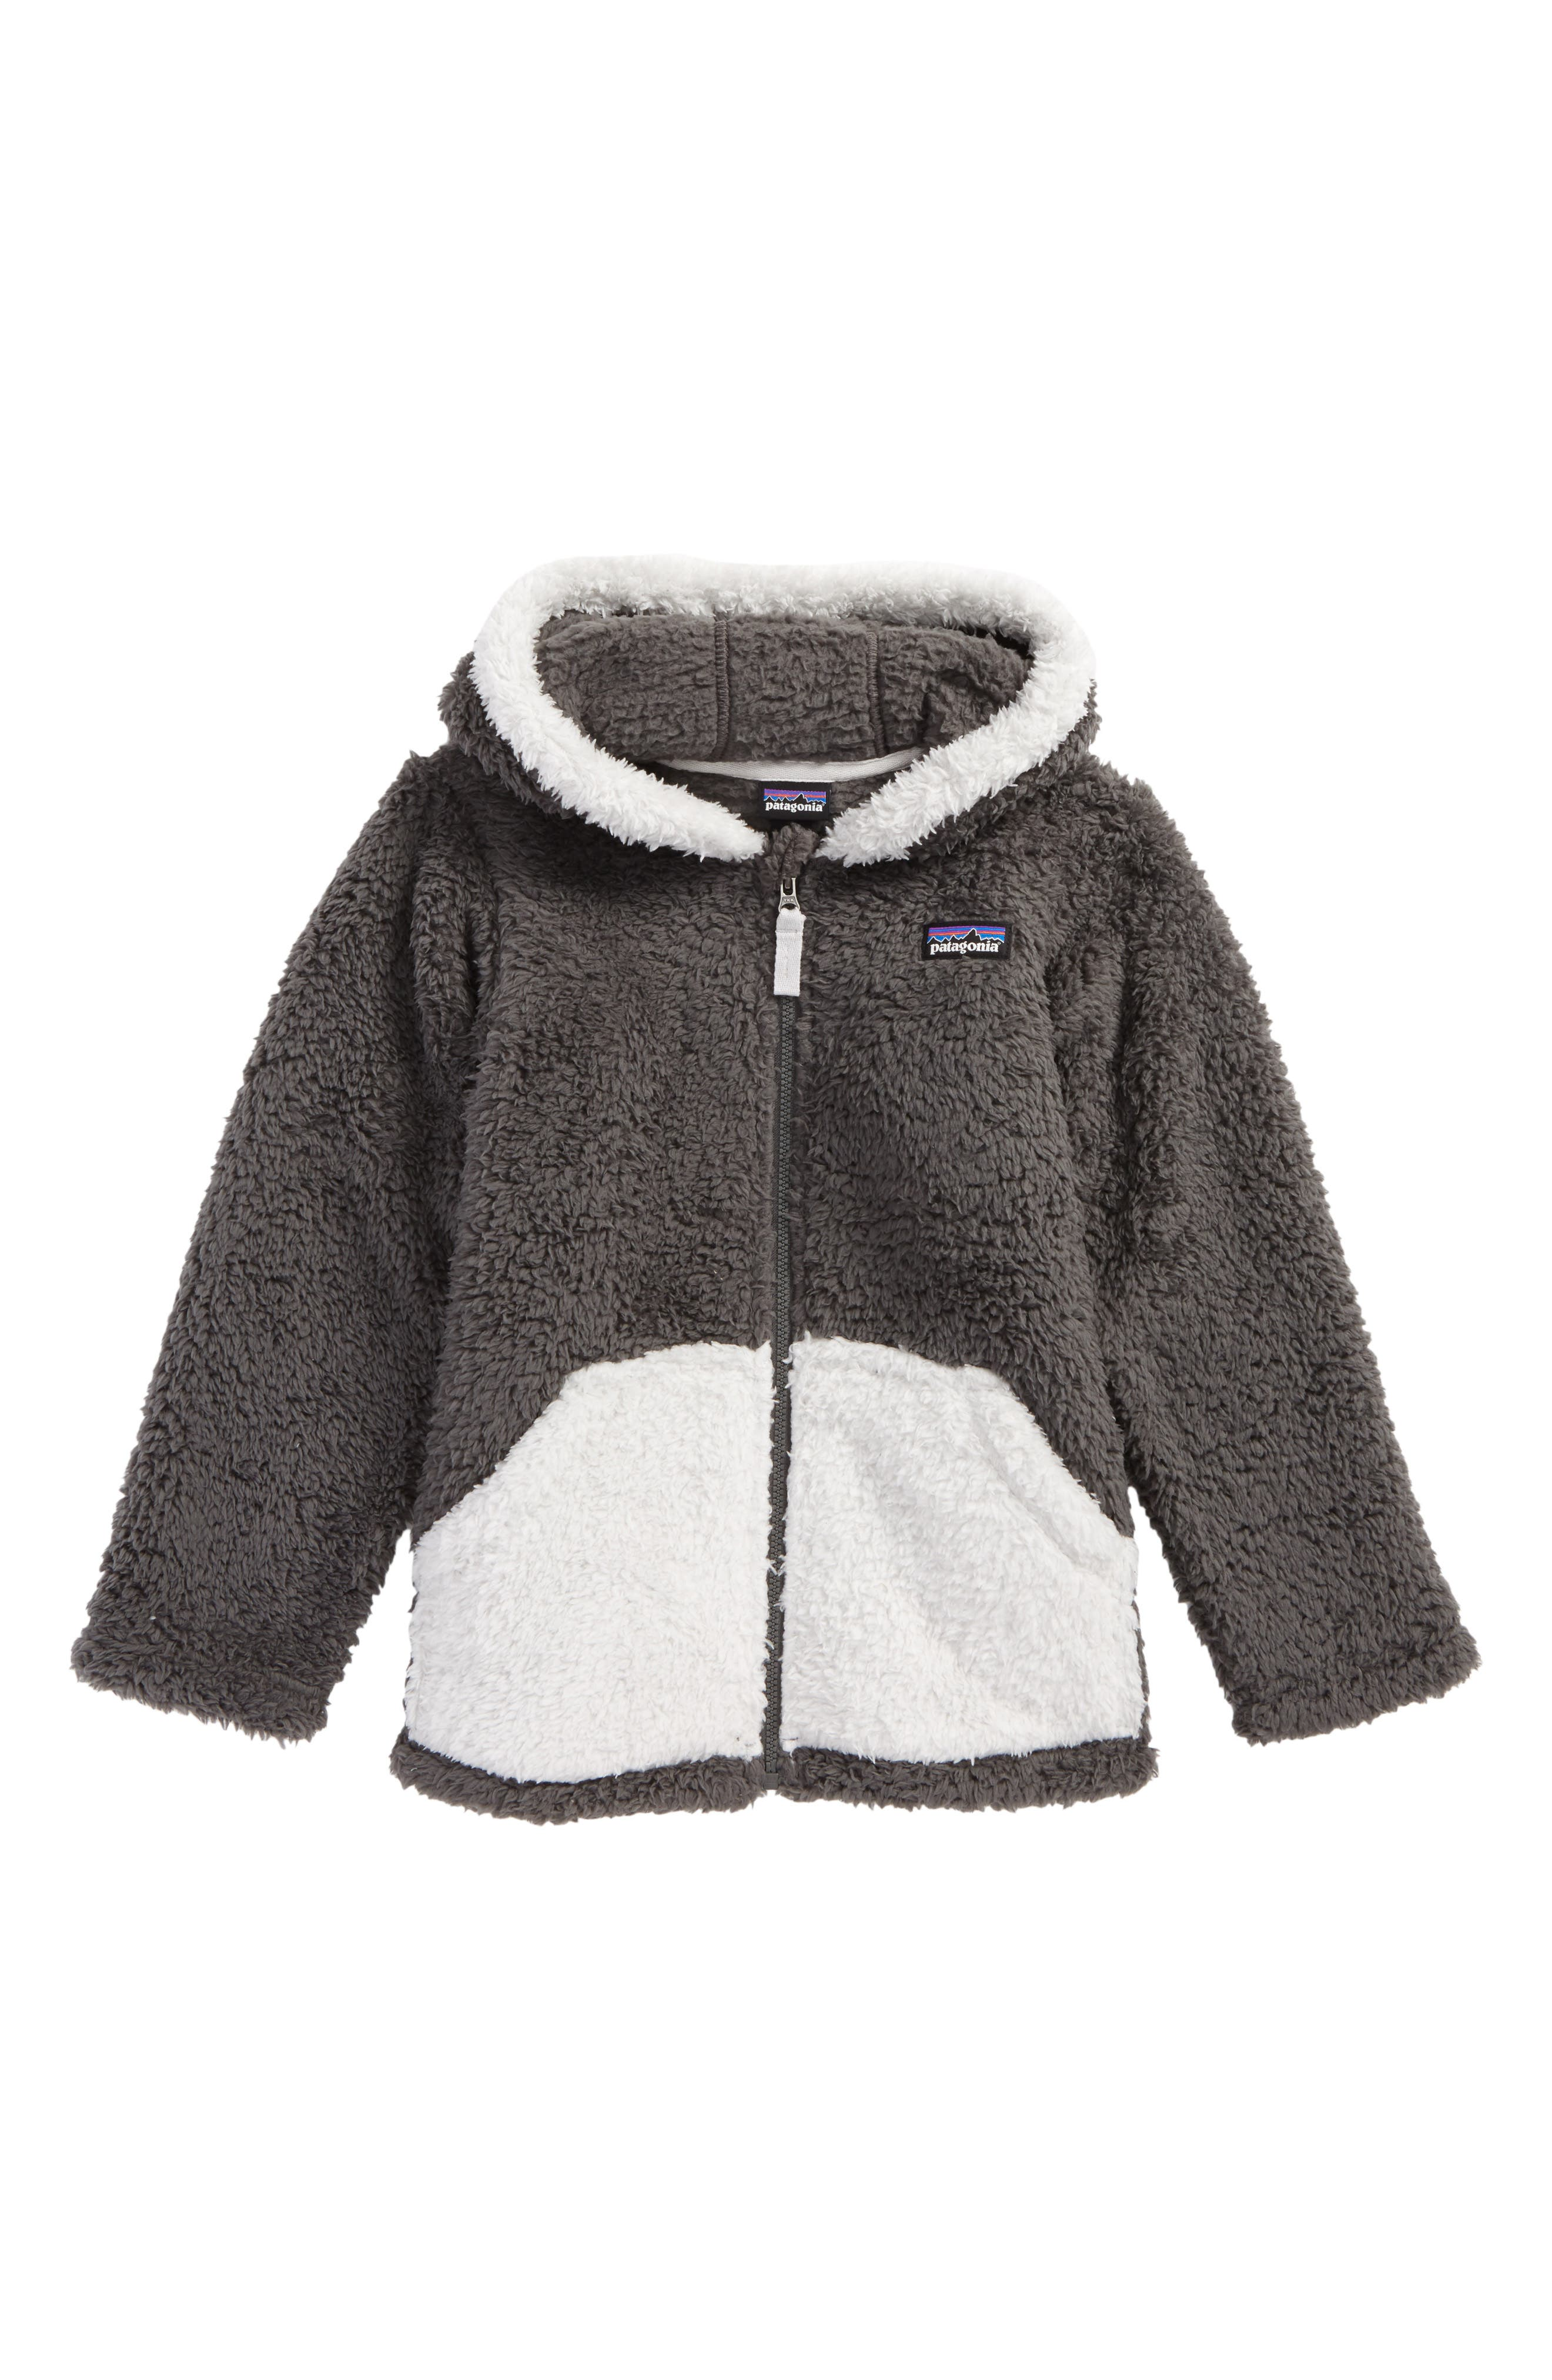 Toddler Boys Patagonia Furry Friends Zip Hoodie Size 5T  Grey